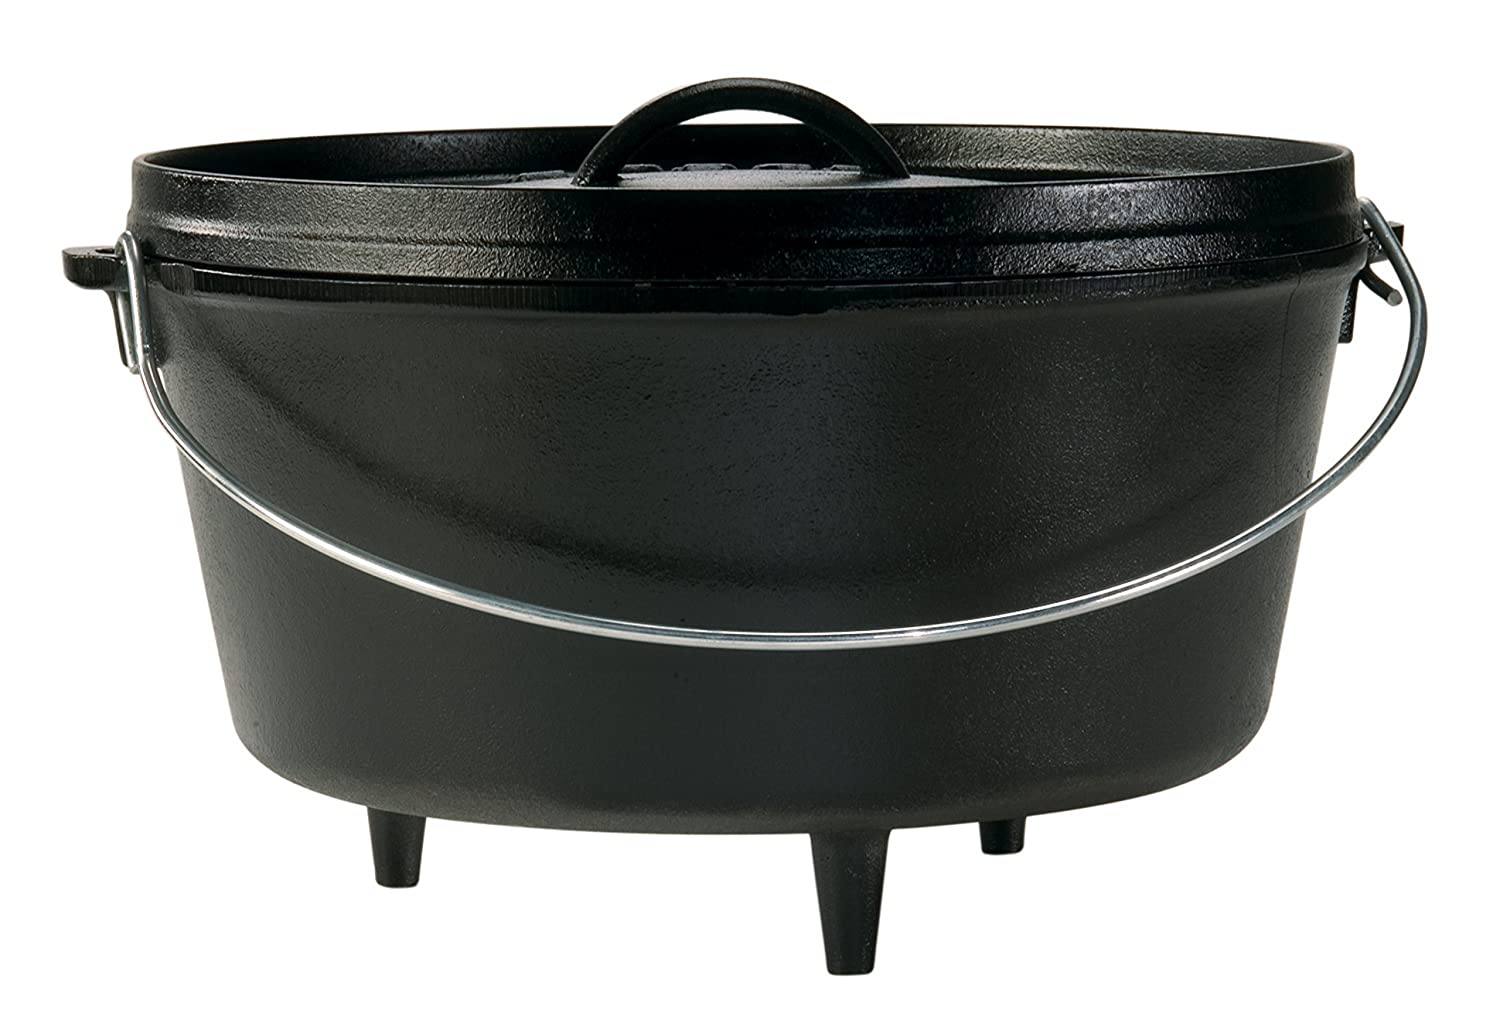 Top 10 Best Dutch Oven For Camping Reviews in 2020 5